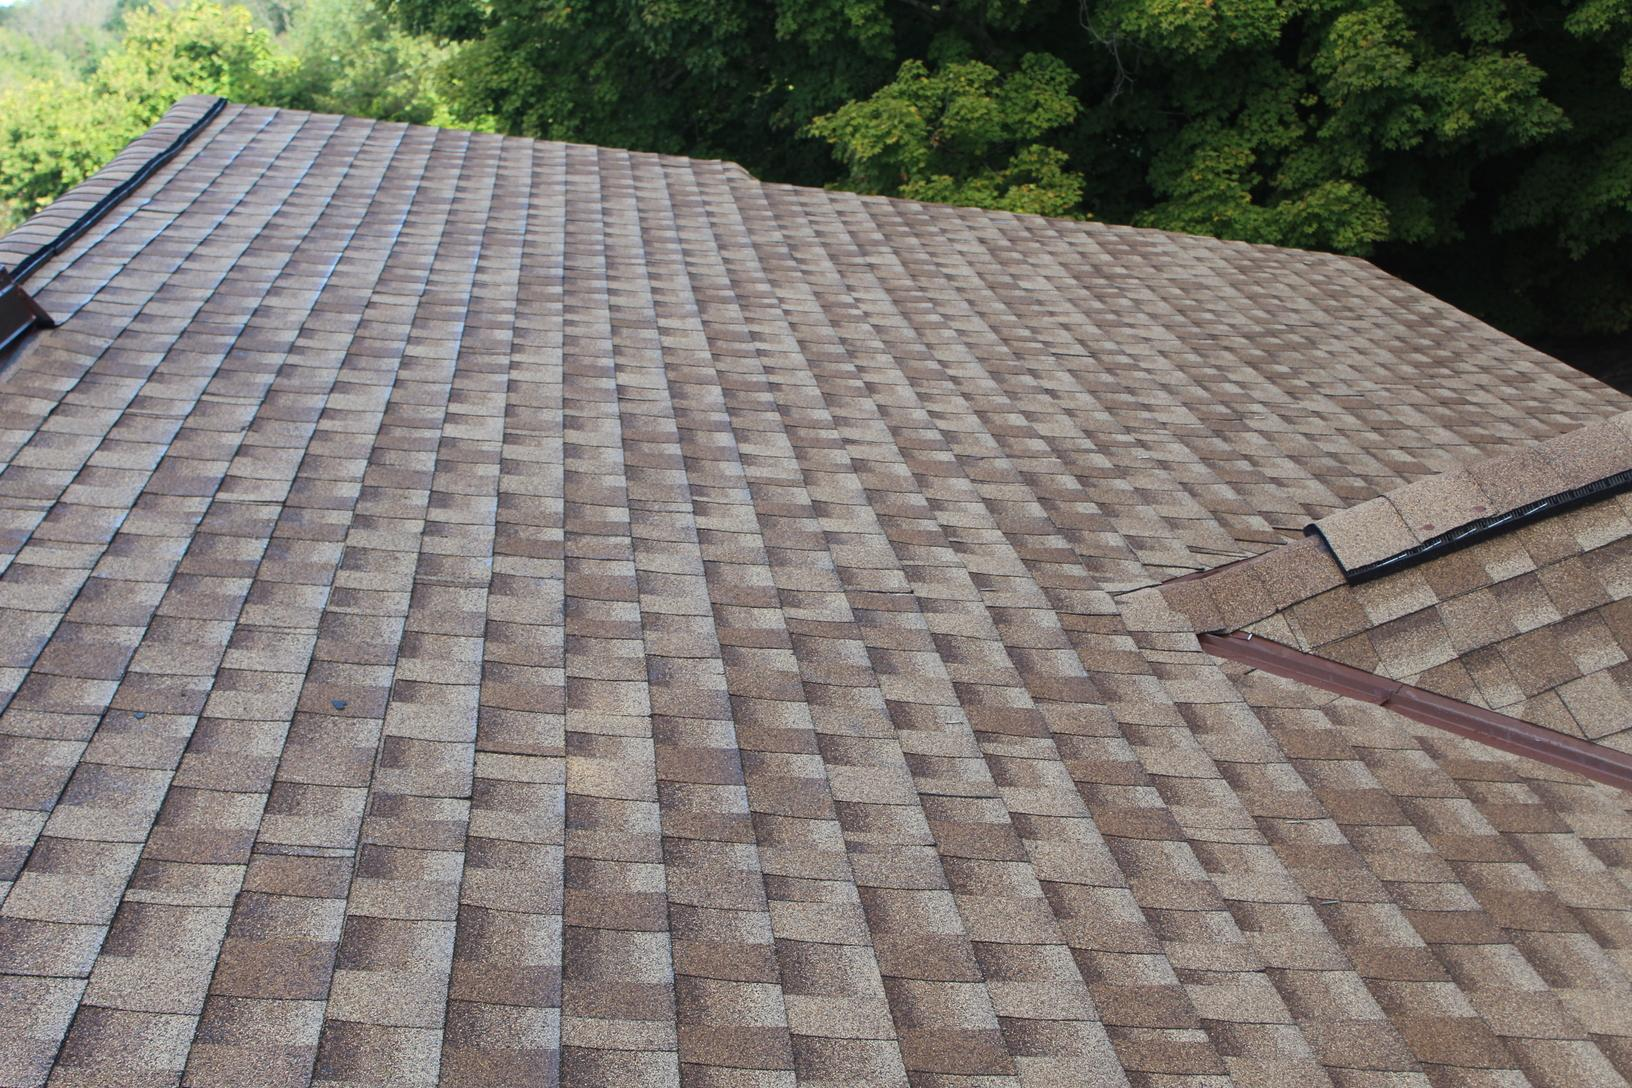 Roof Replacement in Portage, MI - After Photo